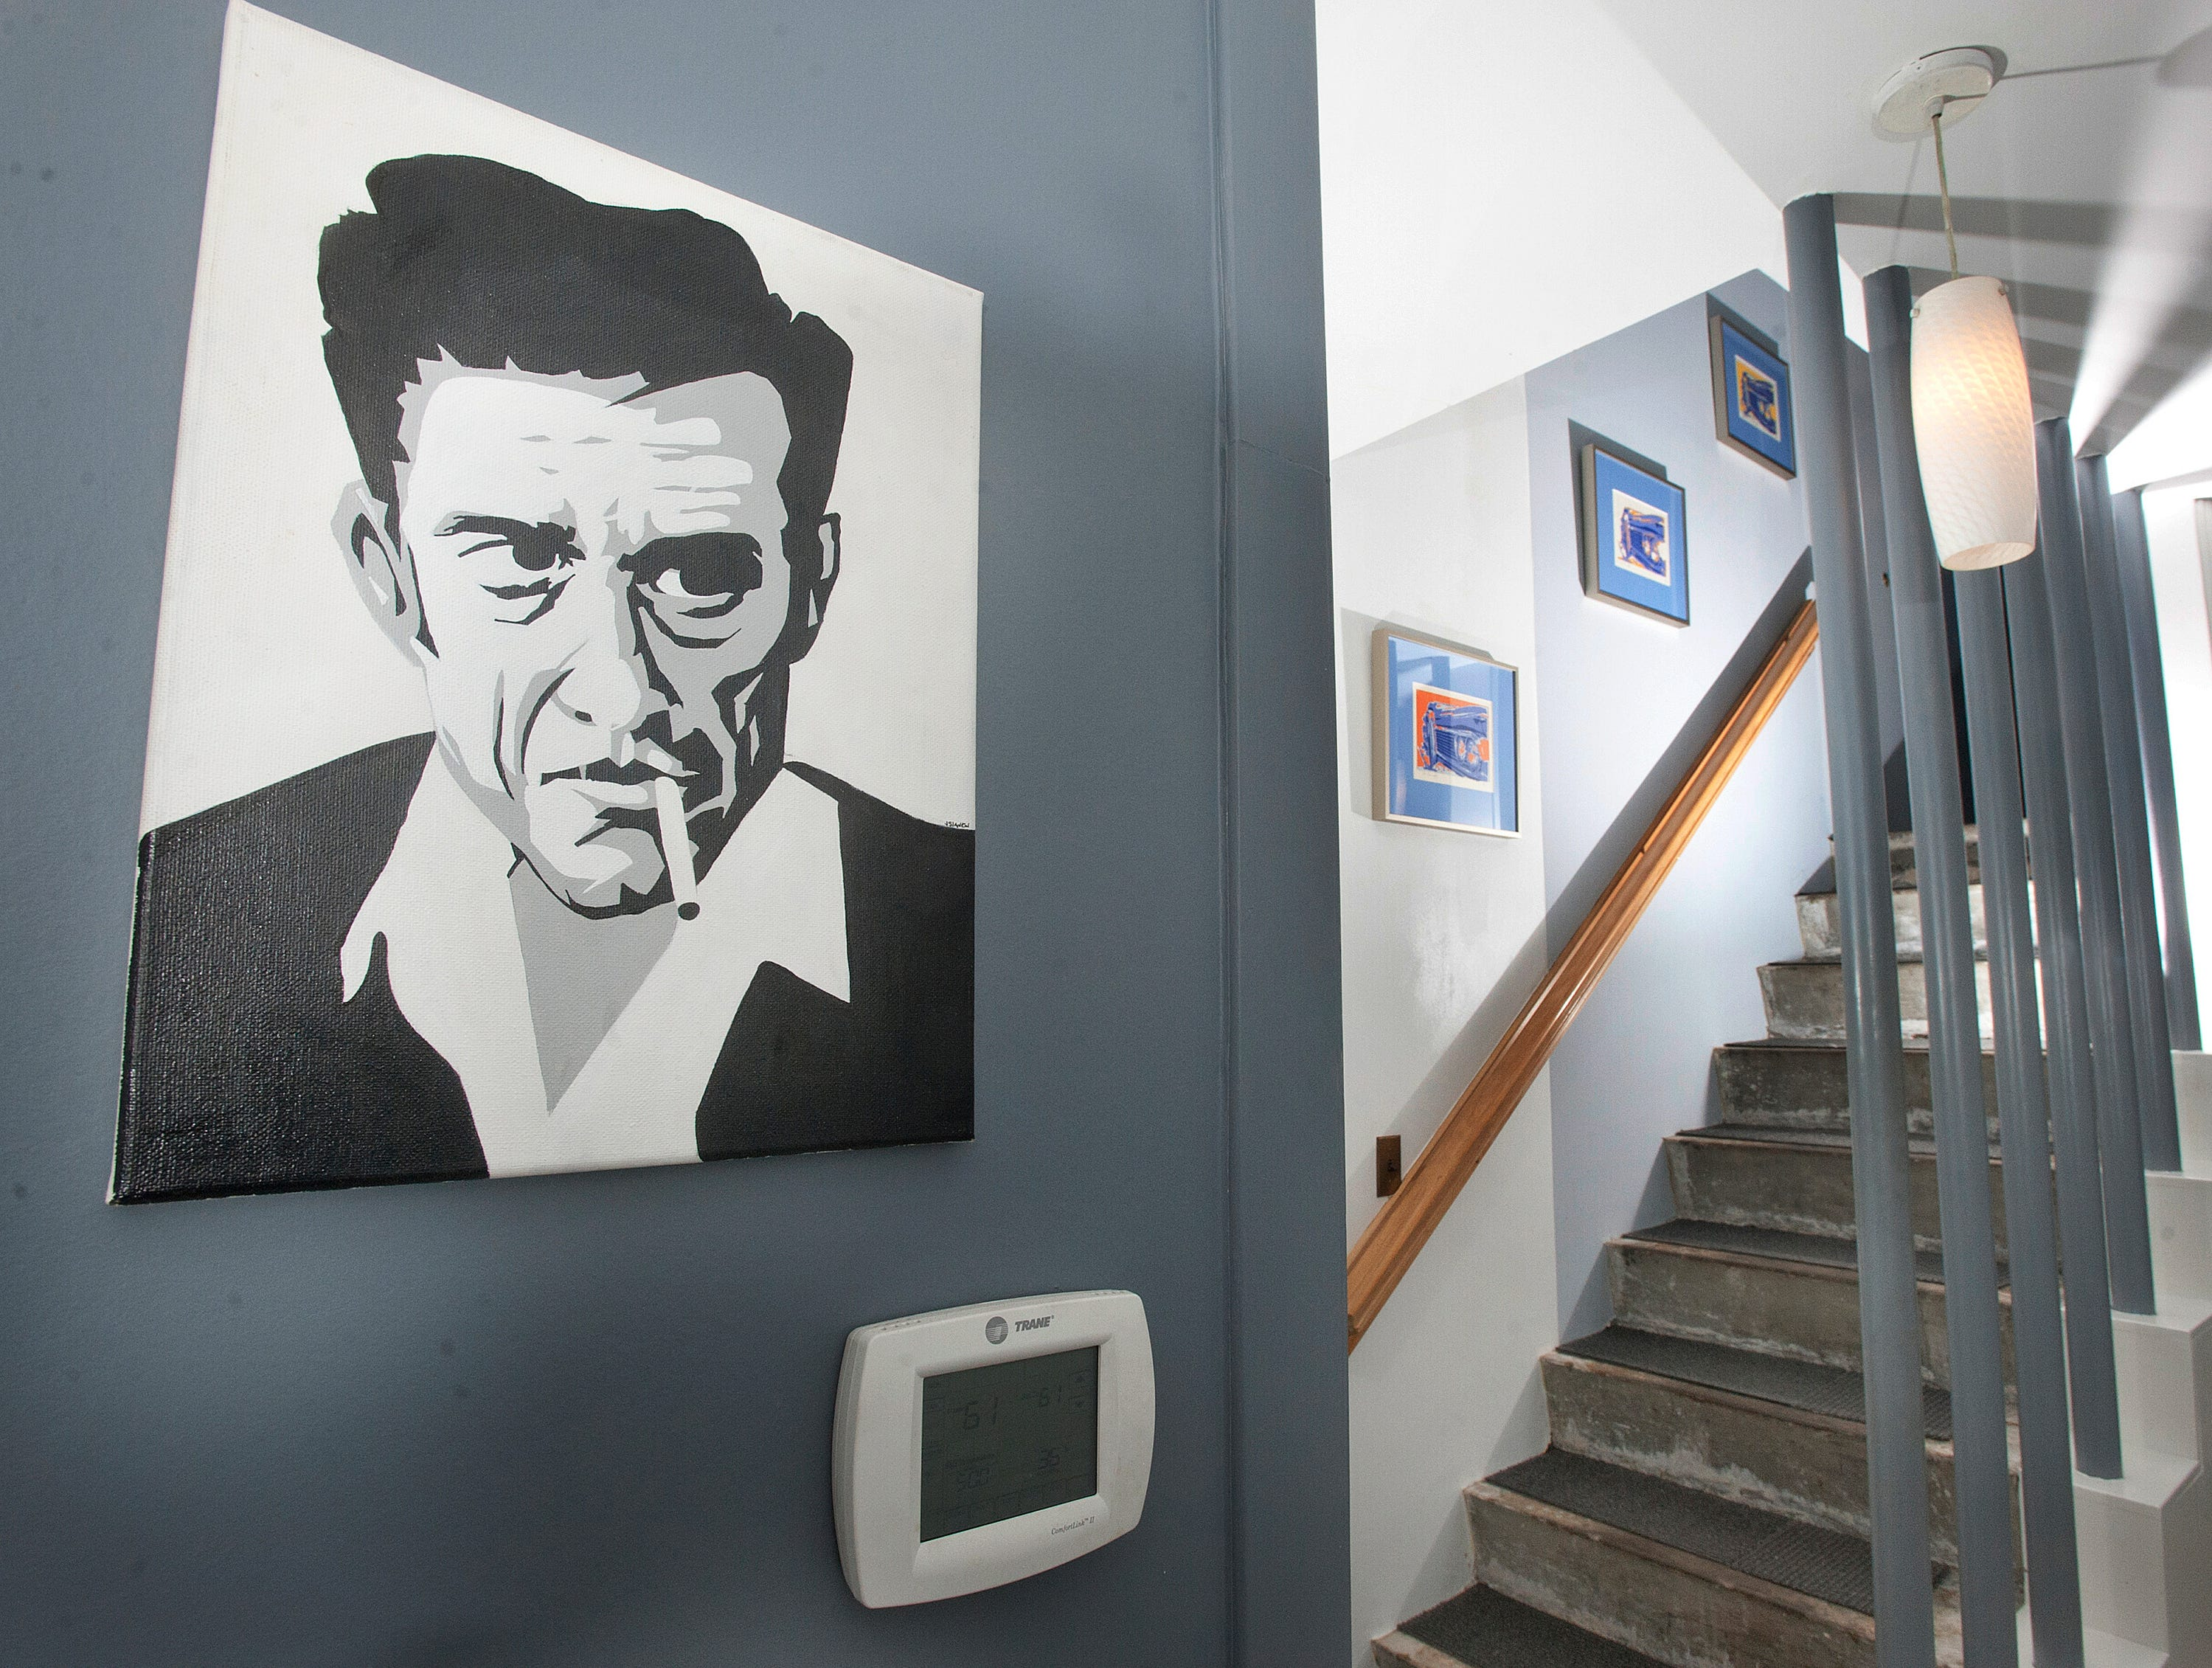 This portrait of Johnny Cash, bought by Cannady at an art fair, hangs at the base of the stairwell to the 2nd floor.10 December 2018